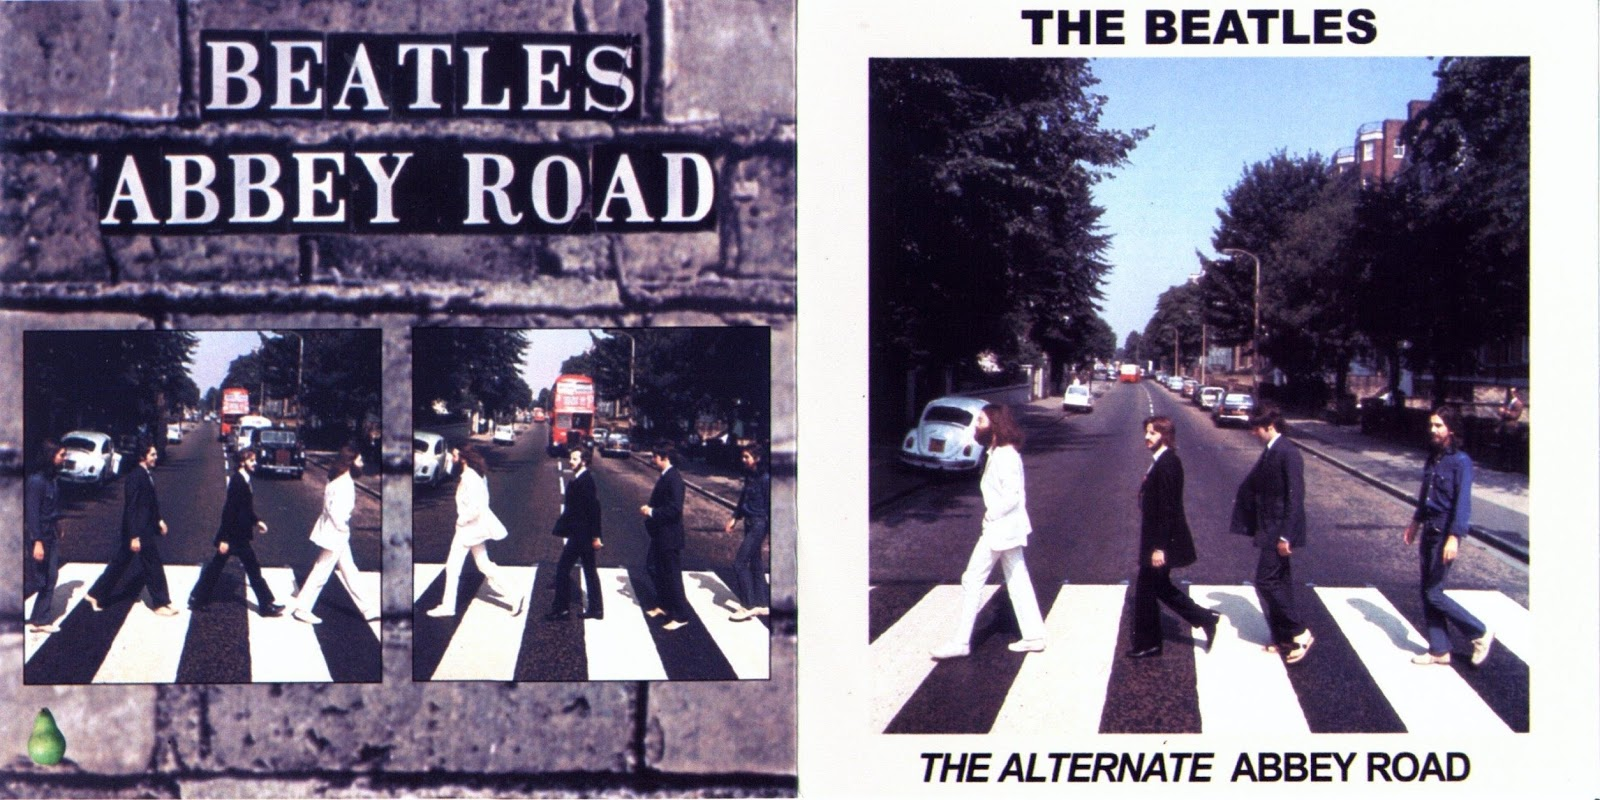 The beatles abbey road medley mp3 free download